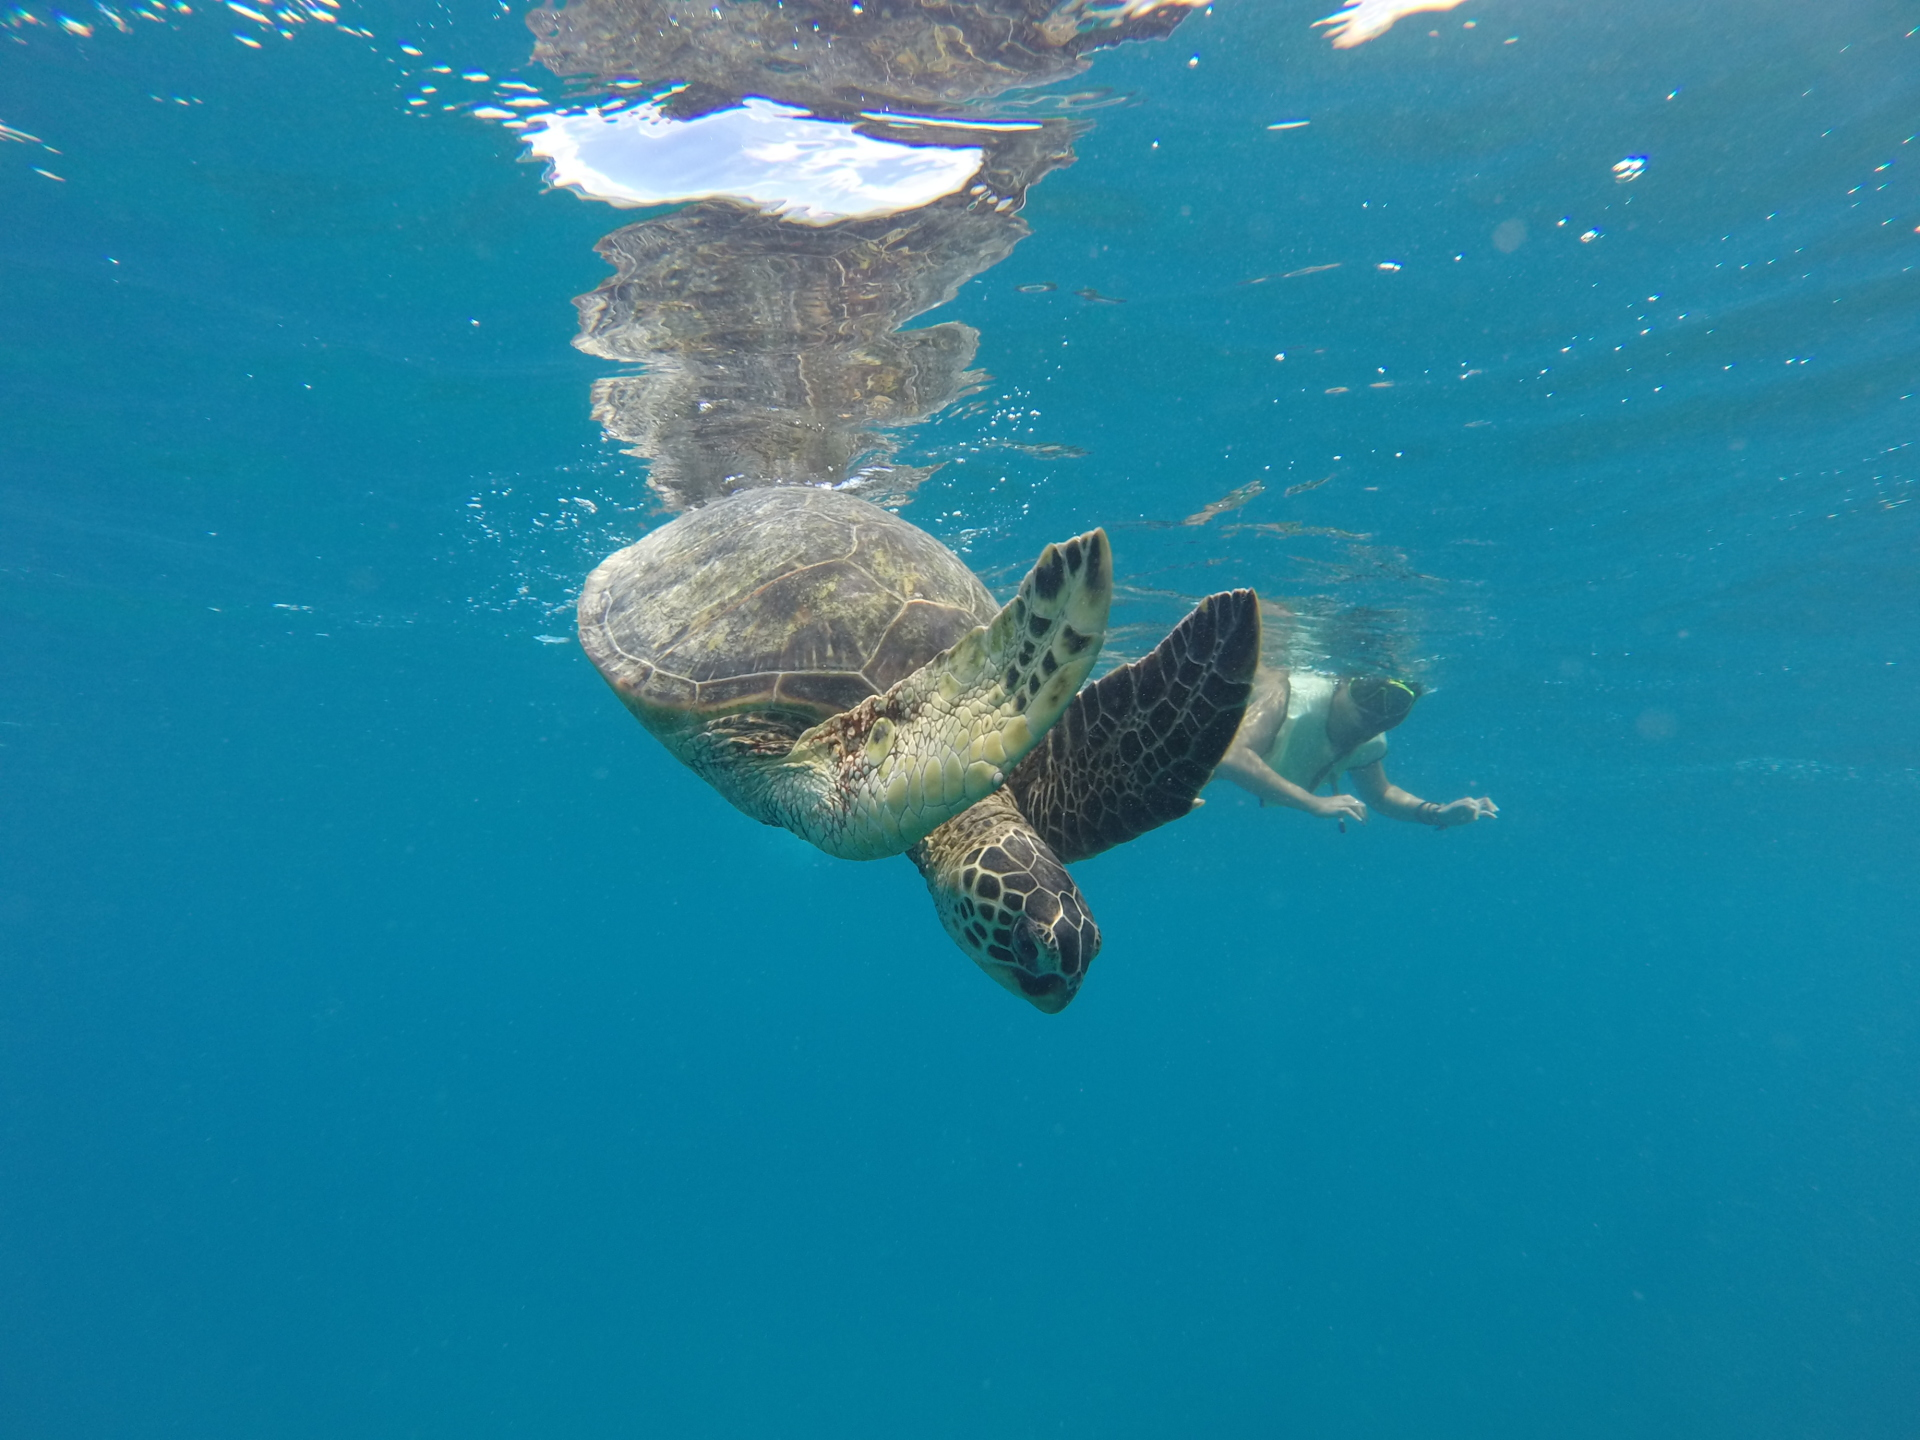 Honu diving! Honu is Hawaiian for Sea Turtle.